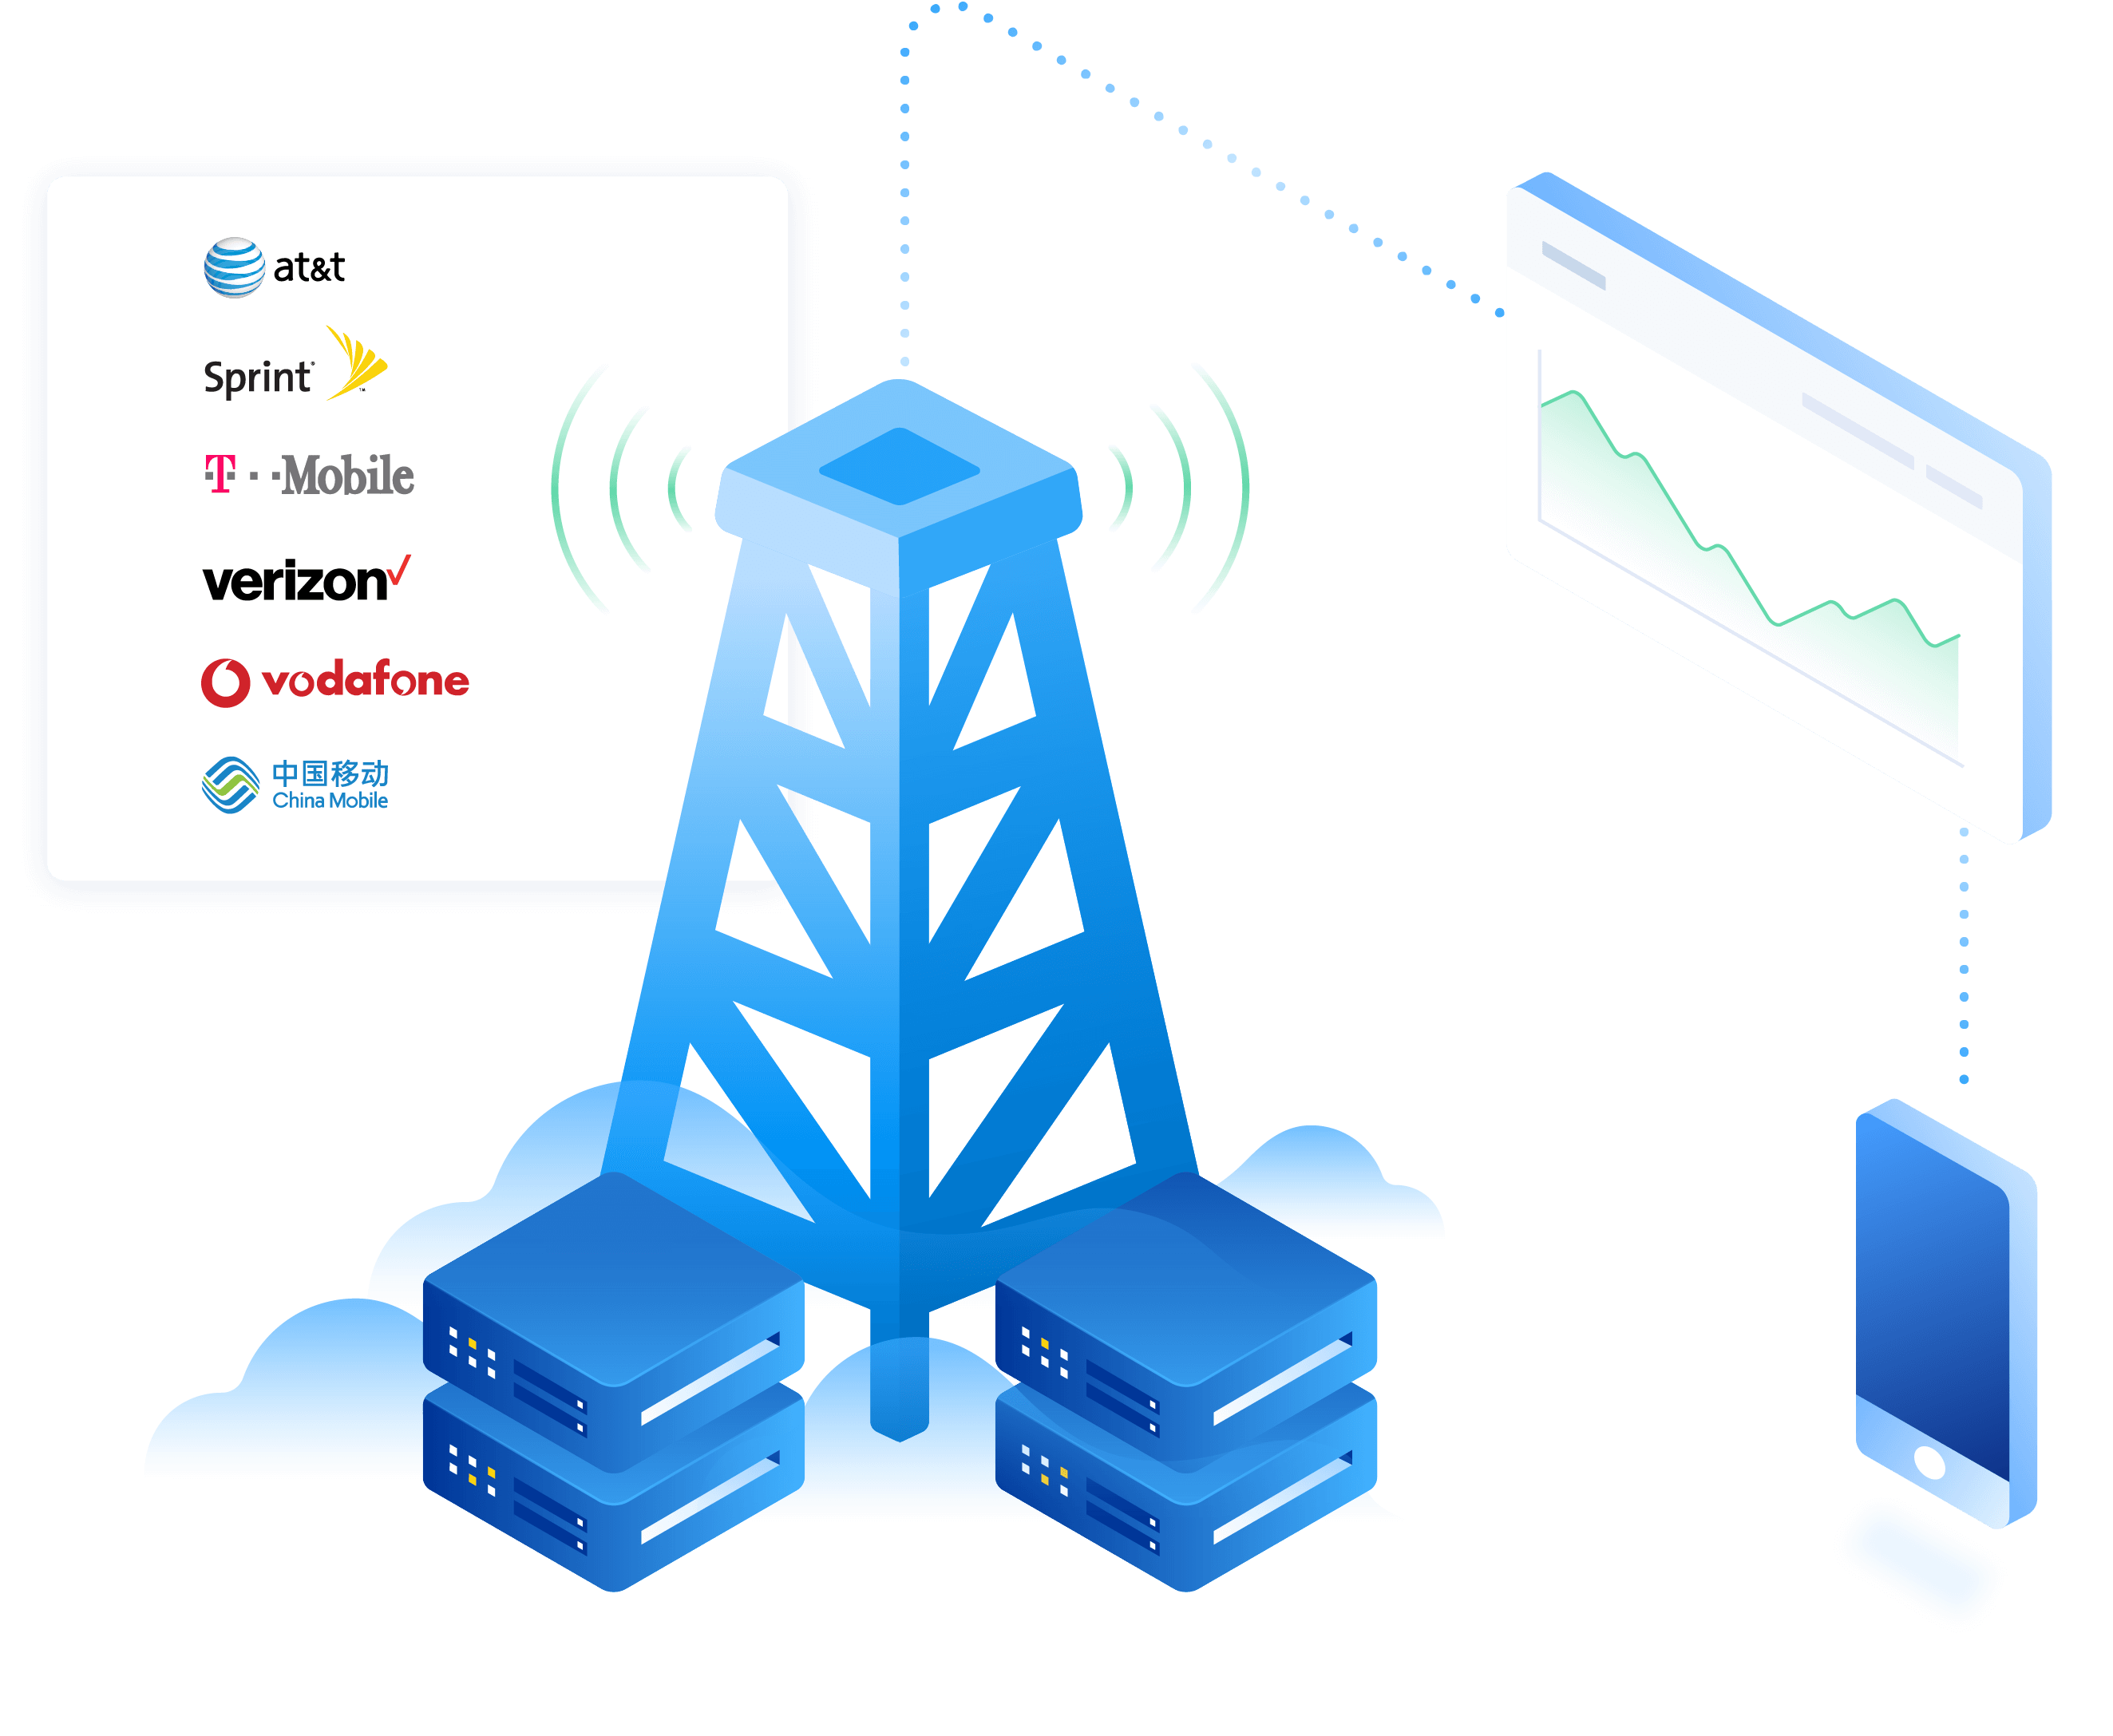 illustration-of-mobile-node-monitoring-with-telco-providers